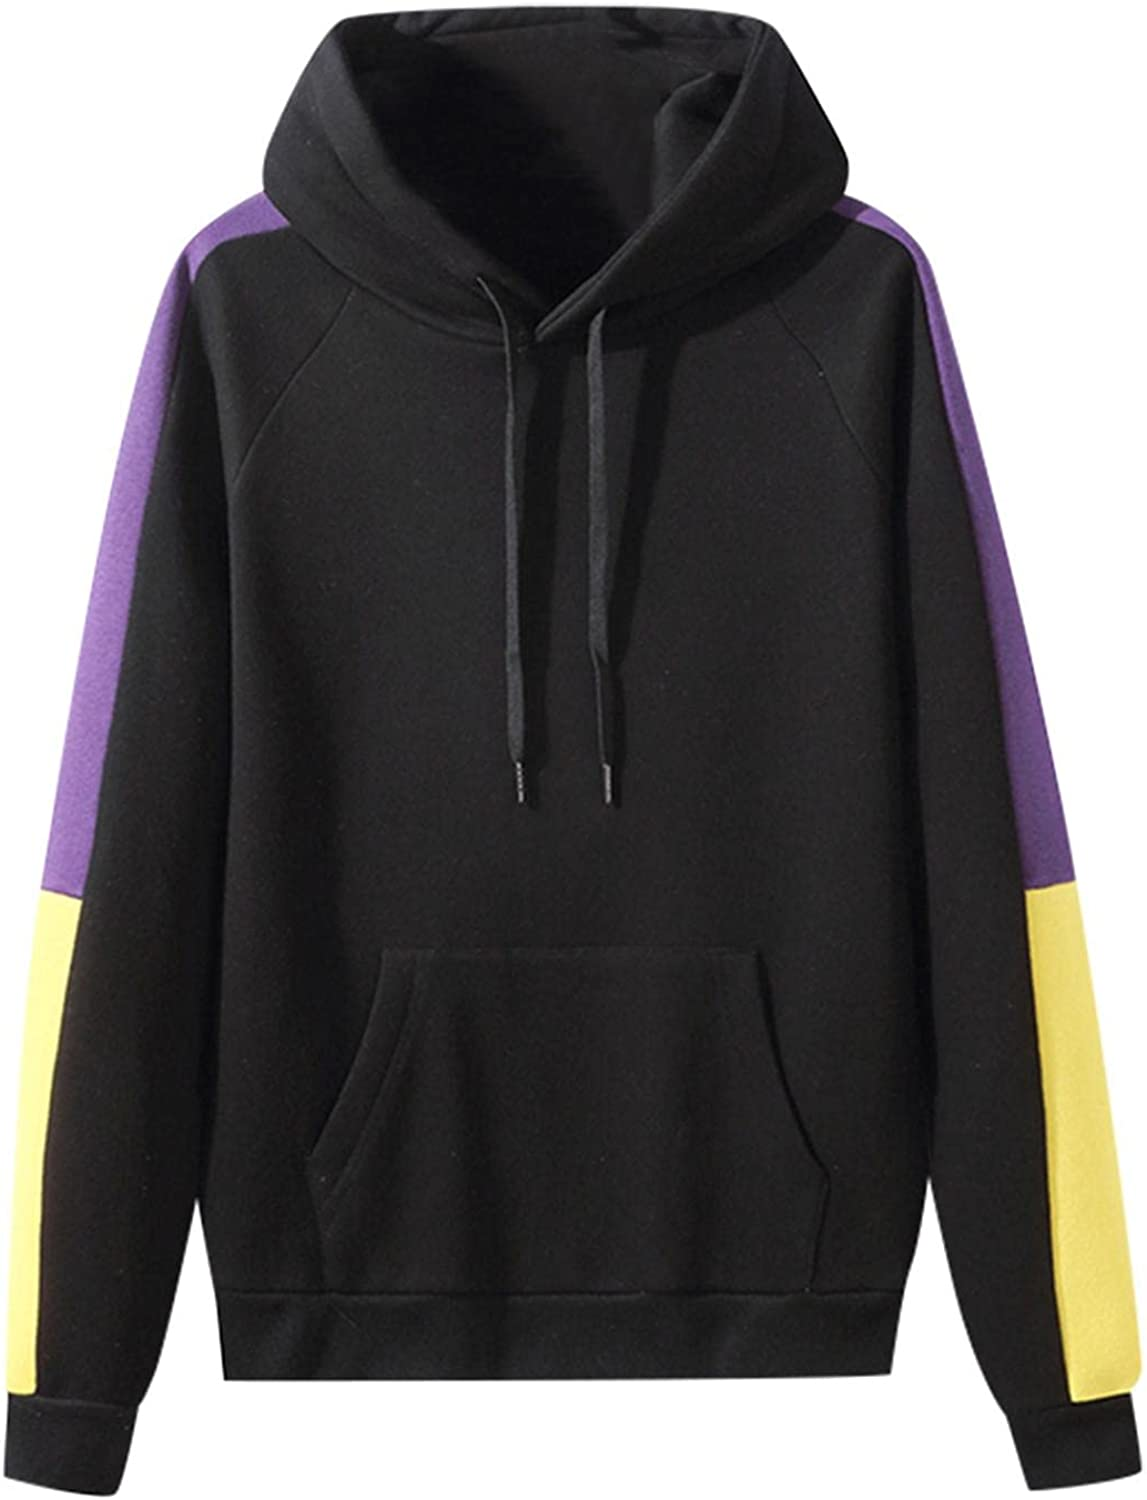 Qsctys Men's Fashion Hoodies & Sweatshirts Patchwork Athletic Pullover Crewneck Sports Clothing Soft Blend Fleece Hooded